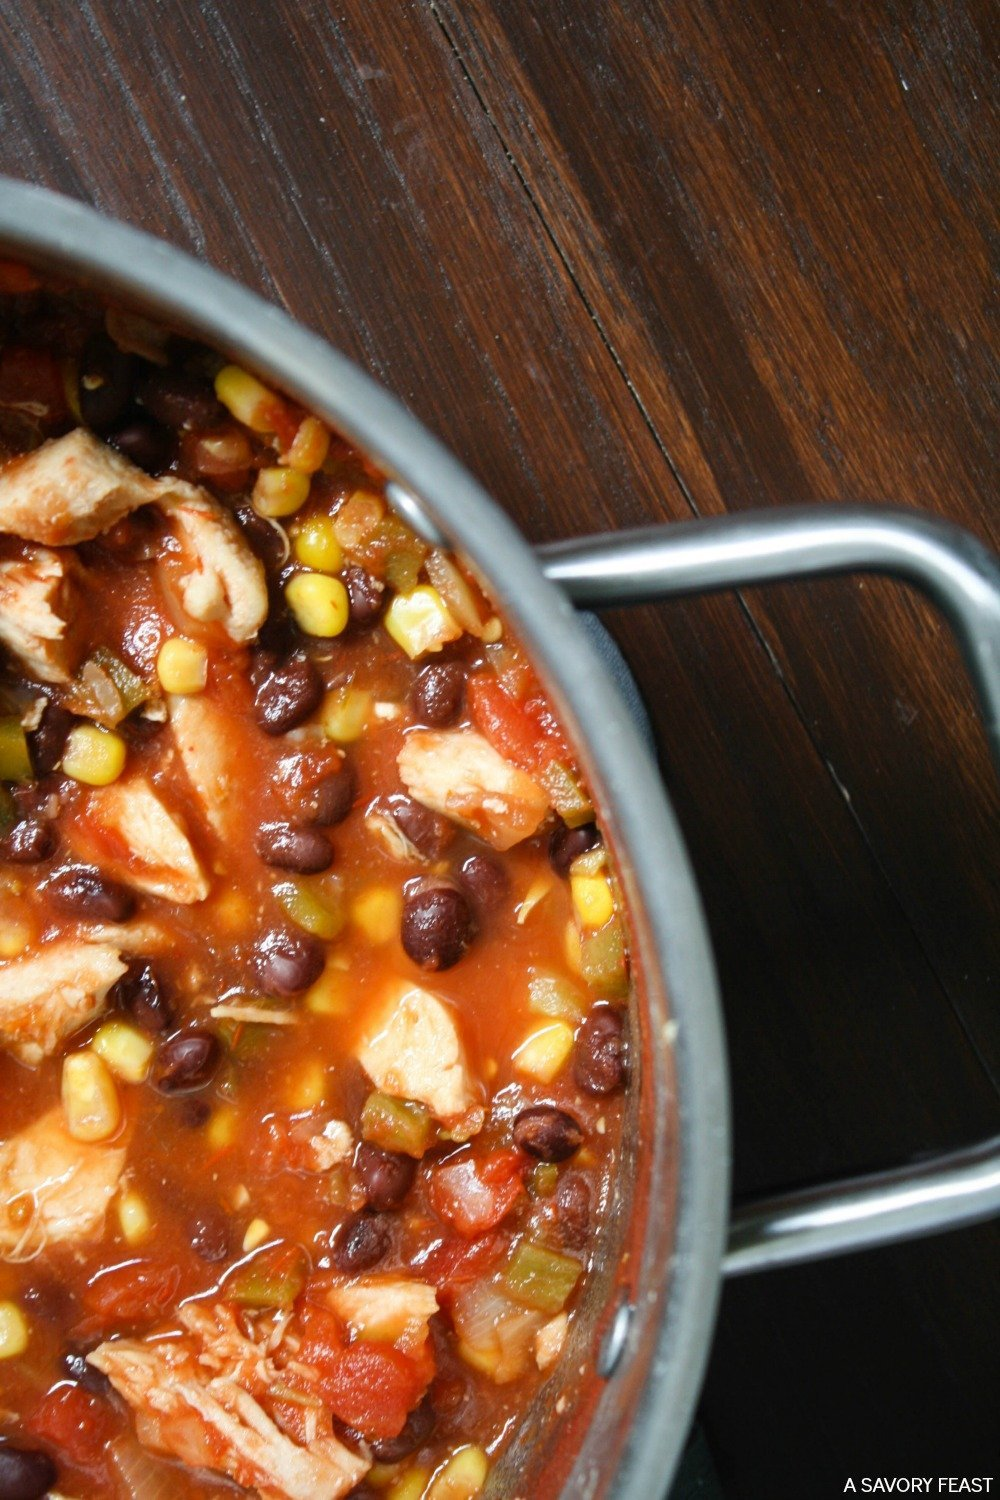 Dinner so easy, it's almost cheating! Mexican Fiesta Soup takes just minutes to throw together and is ready in under 30 minutes. Packed with flavor and filling ingredients like chicken, black beans, salsa and more. You'll love it for a busy weeknight meal!